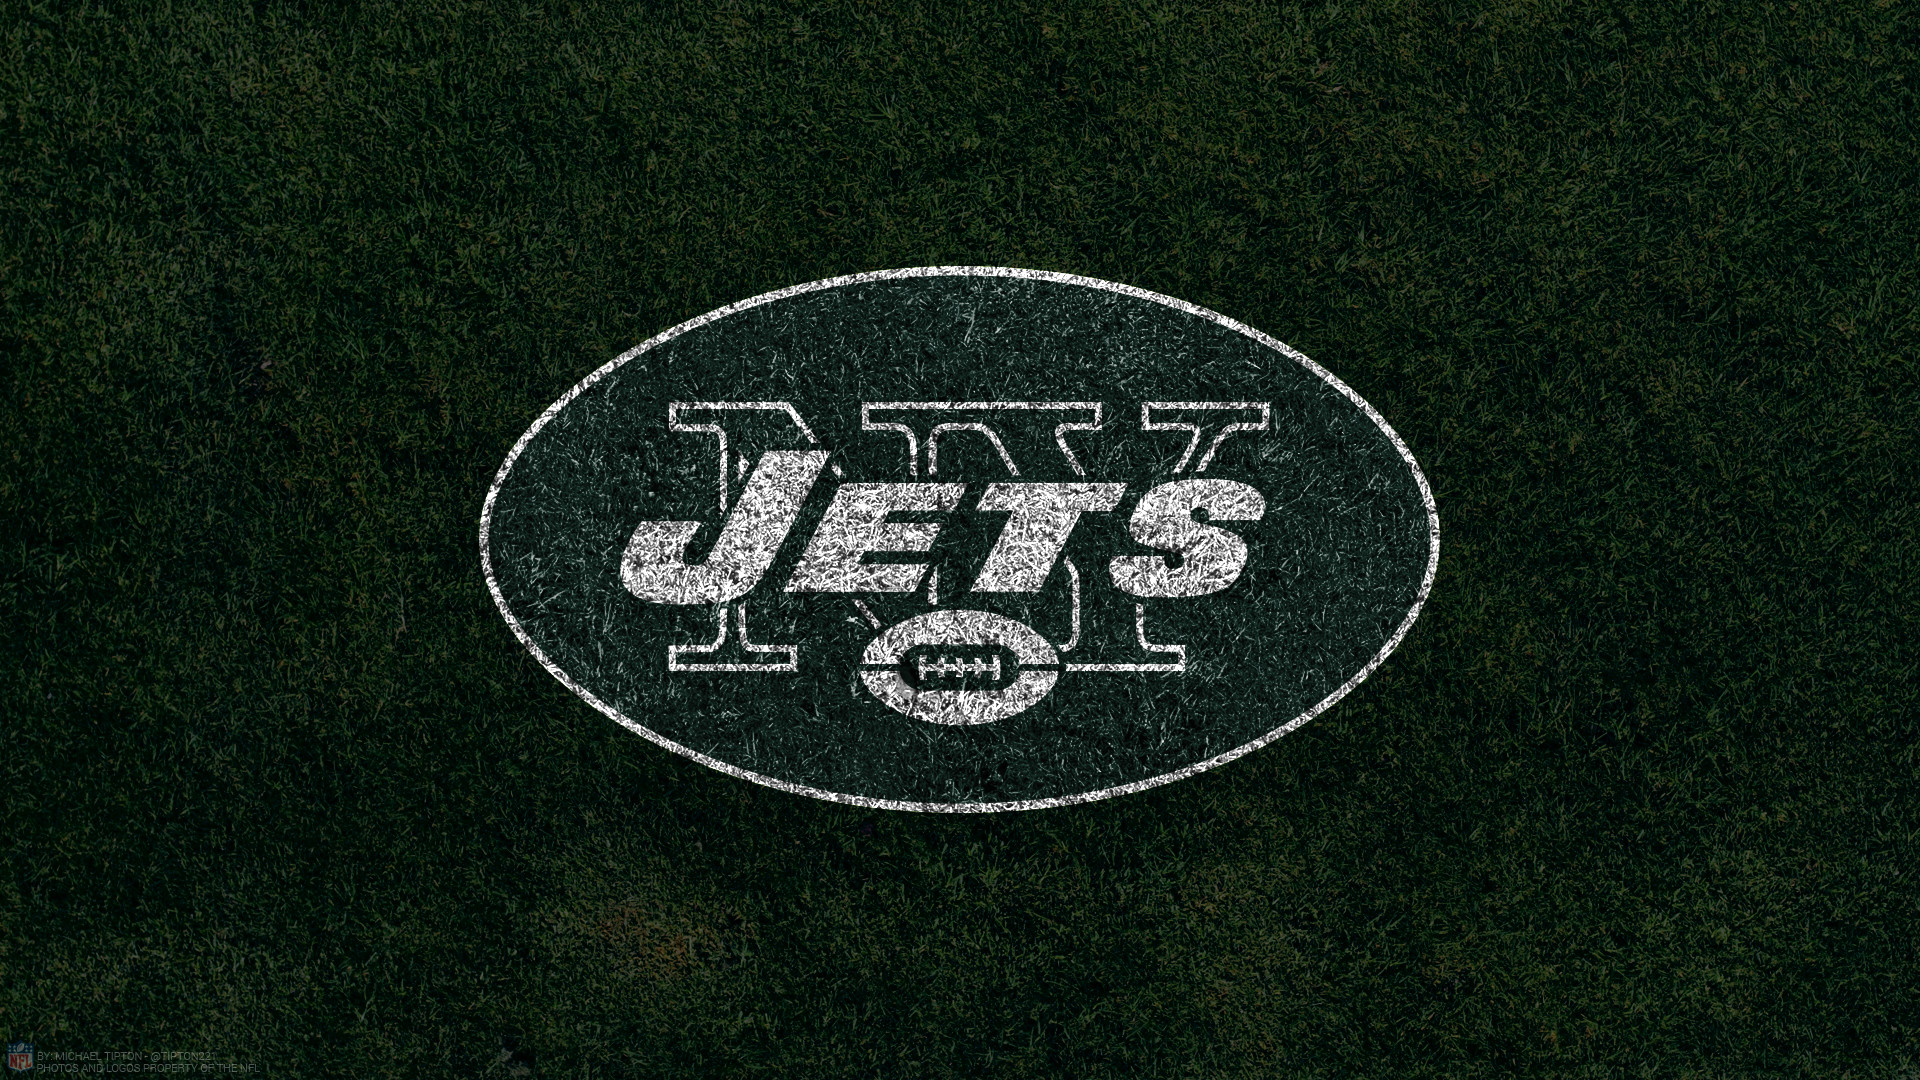 New York Jets Wallpapers 183 ① Wallpapertag